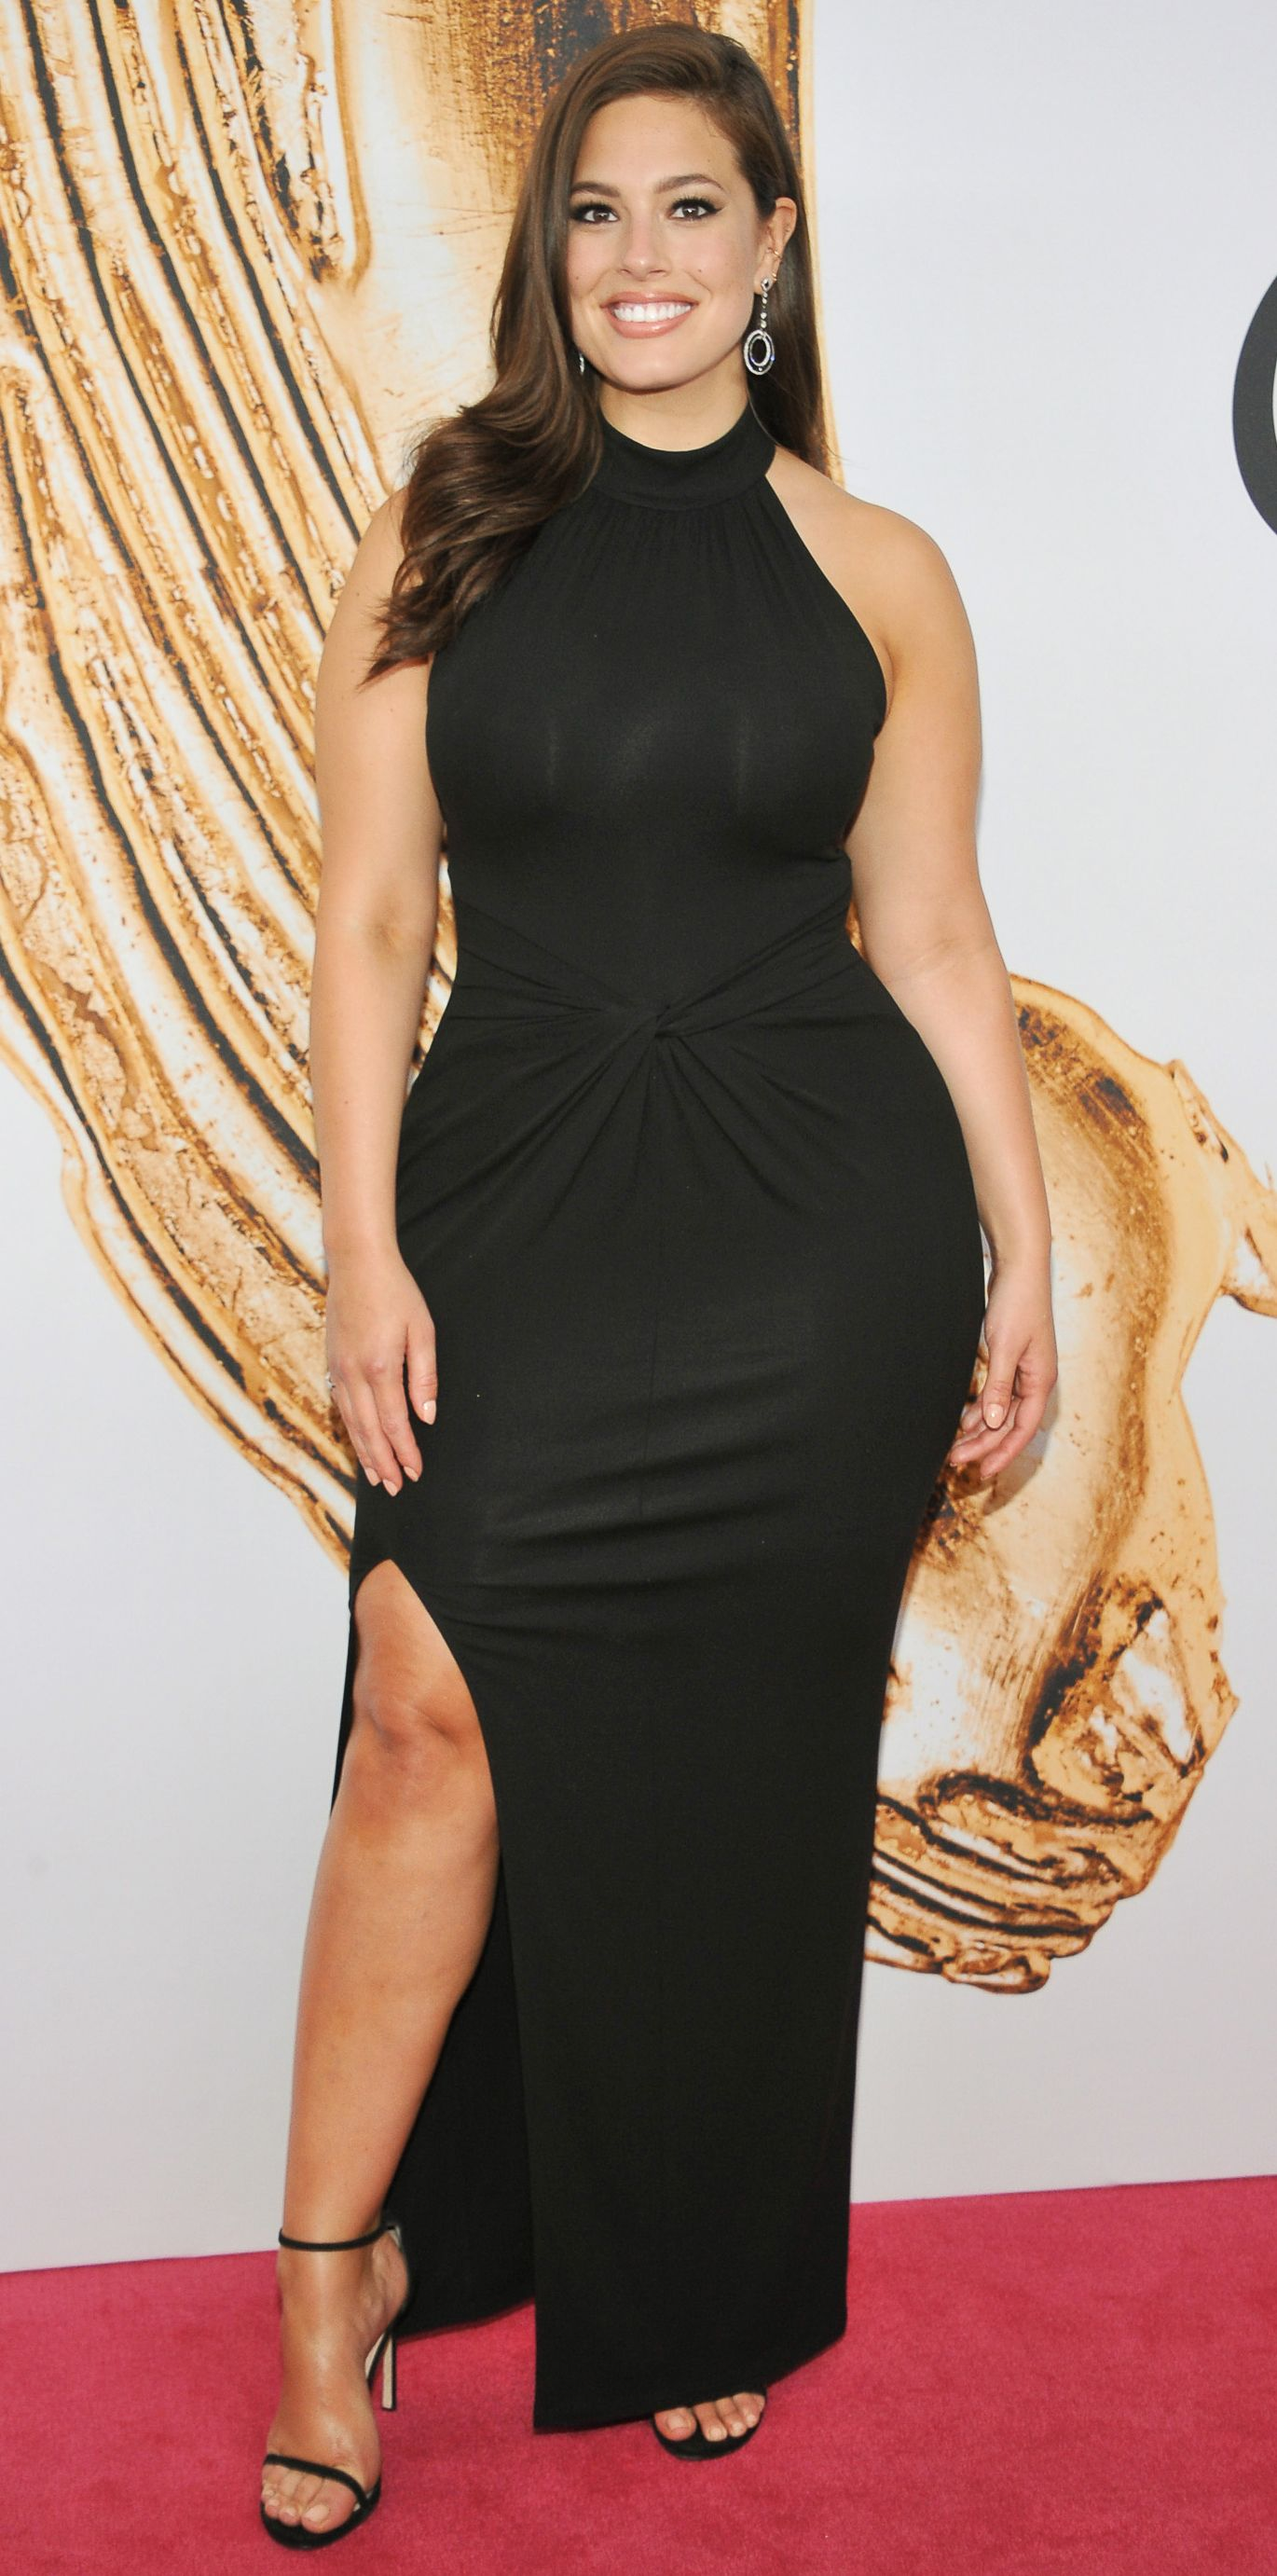 9b0c5da239c 9 Plus-Size Style Lessons to Learn from Ashley Graham - Less Is Often More  from InStyle.com